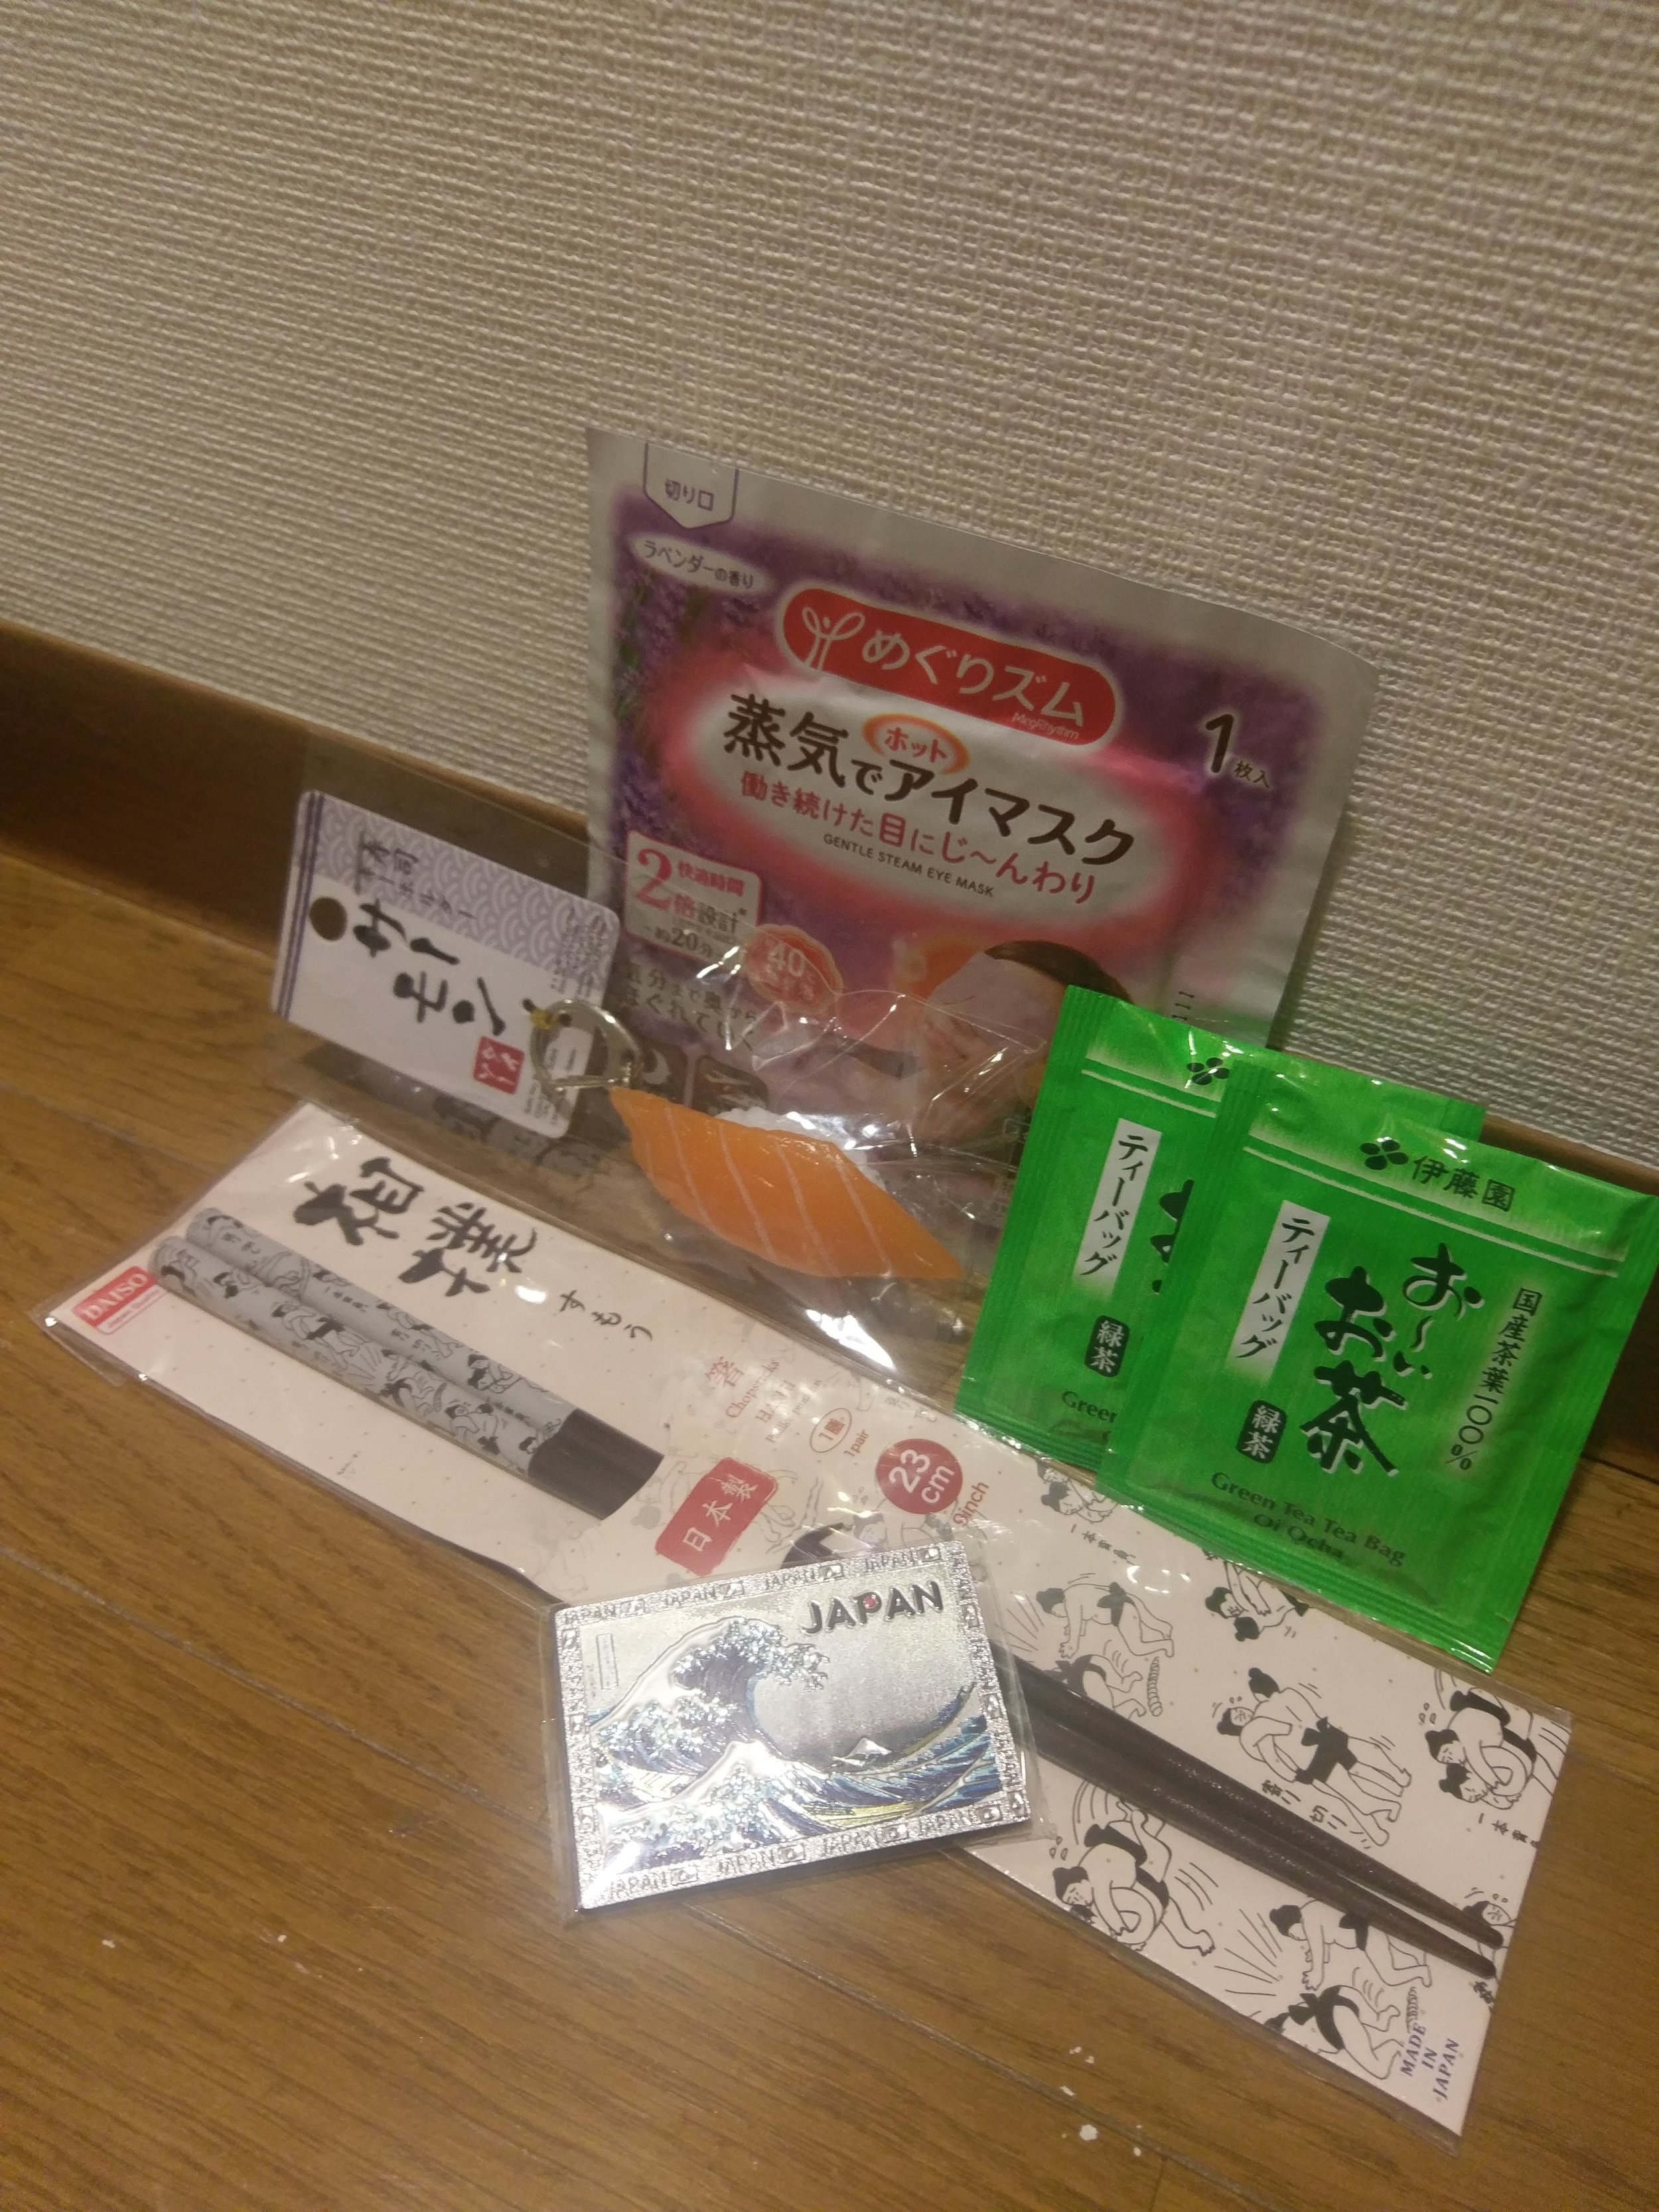 A lavender-scented heated eye mask and green tea bags (supermarket), a sushi keychain and chopsticks with  sumo s on them (Daiso), and a magnet with the famous Hokusai artwork (somewhere in Teramachi)